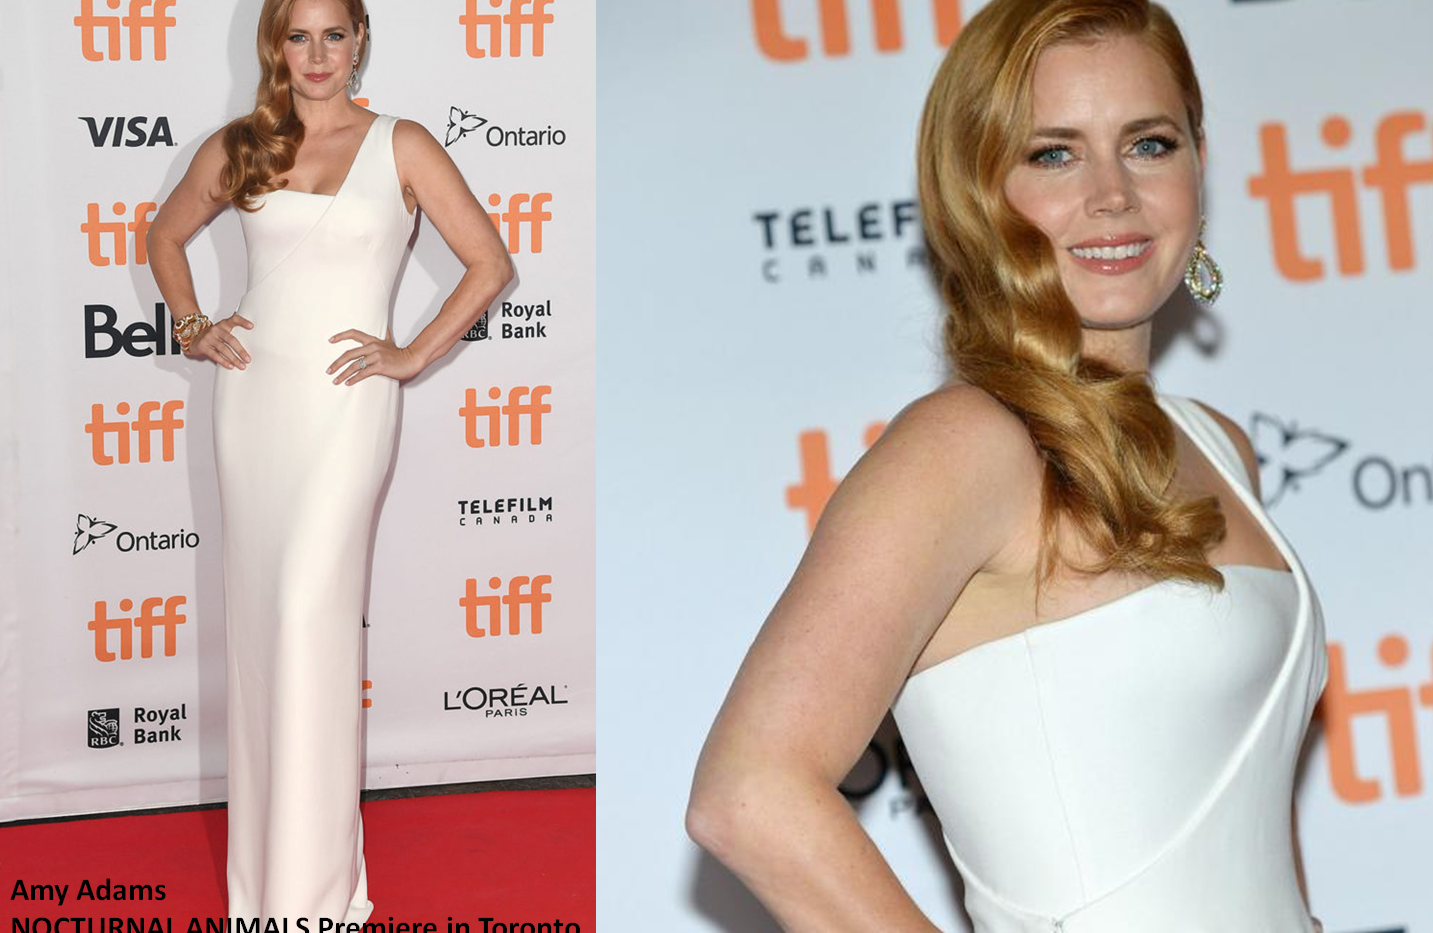 "Amy Adams at ""Nocturnal Animals"" premiere in Toronto wearing white gown - Project for TOM FORD - pattern making - dressmaking - fitting / tailoring - managing - garment technology consult"